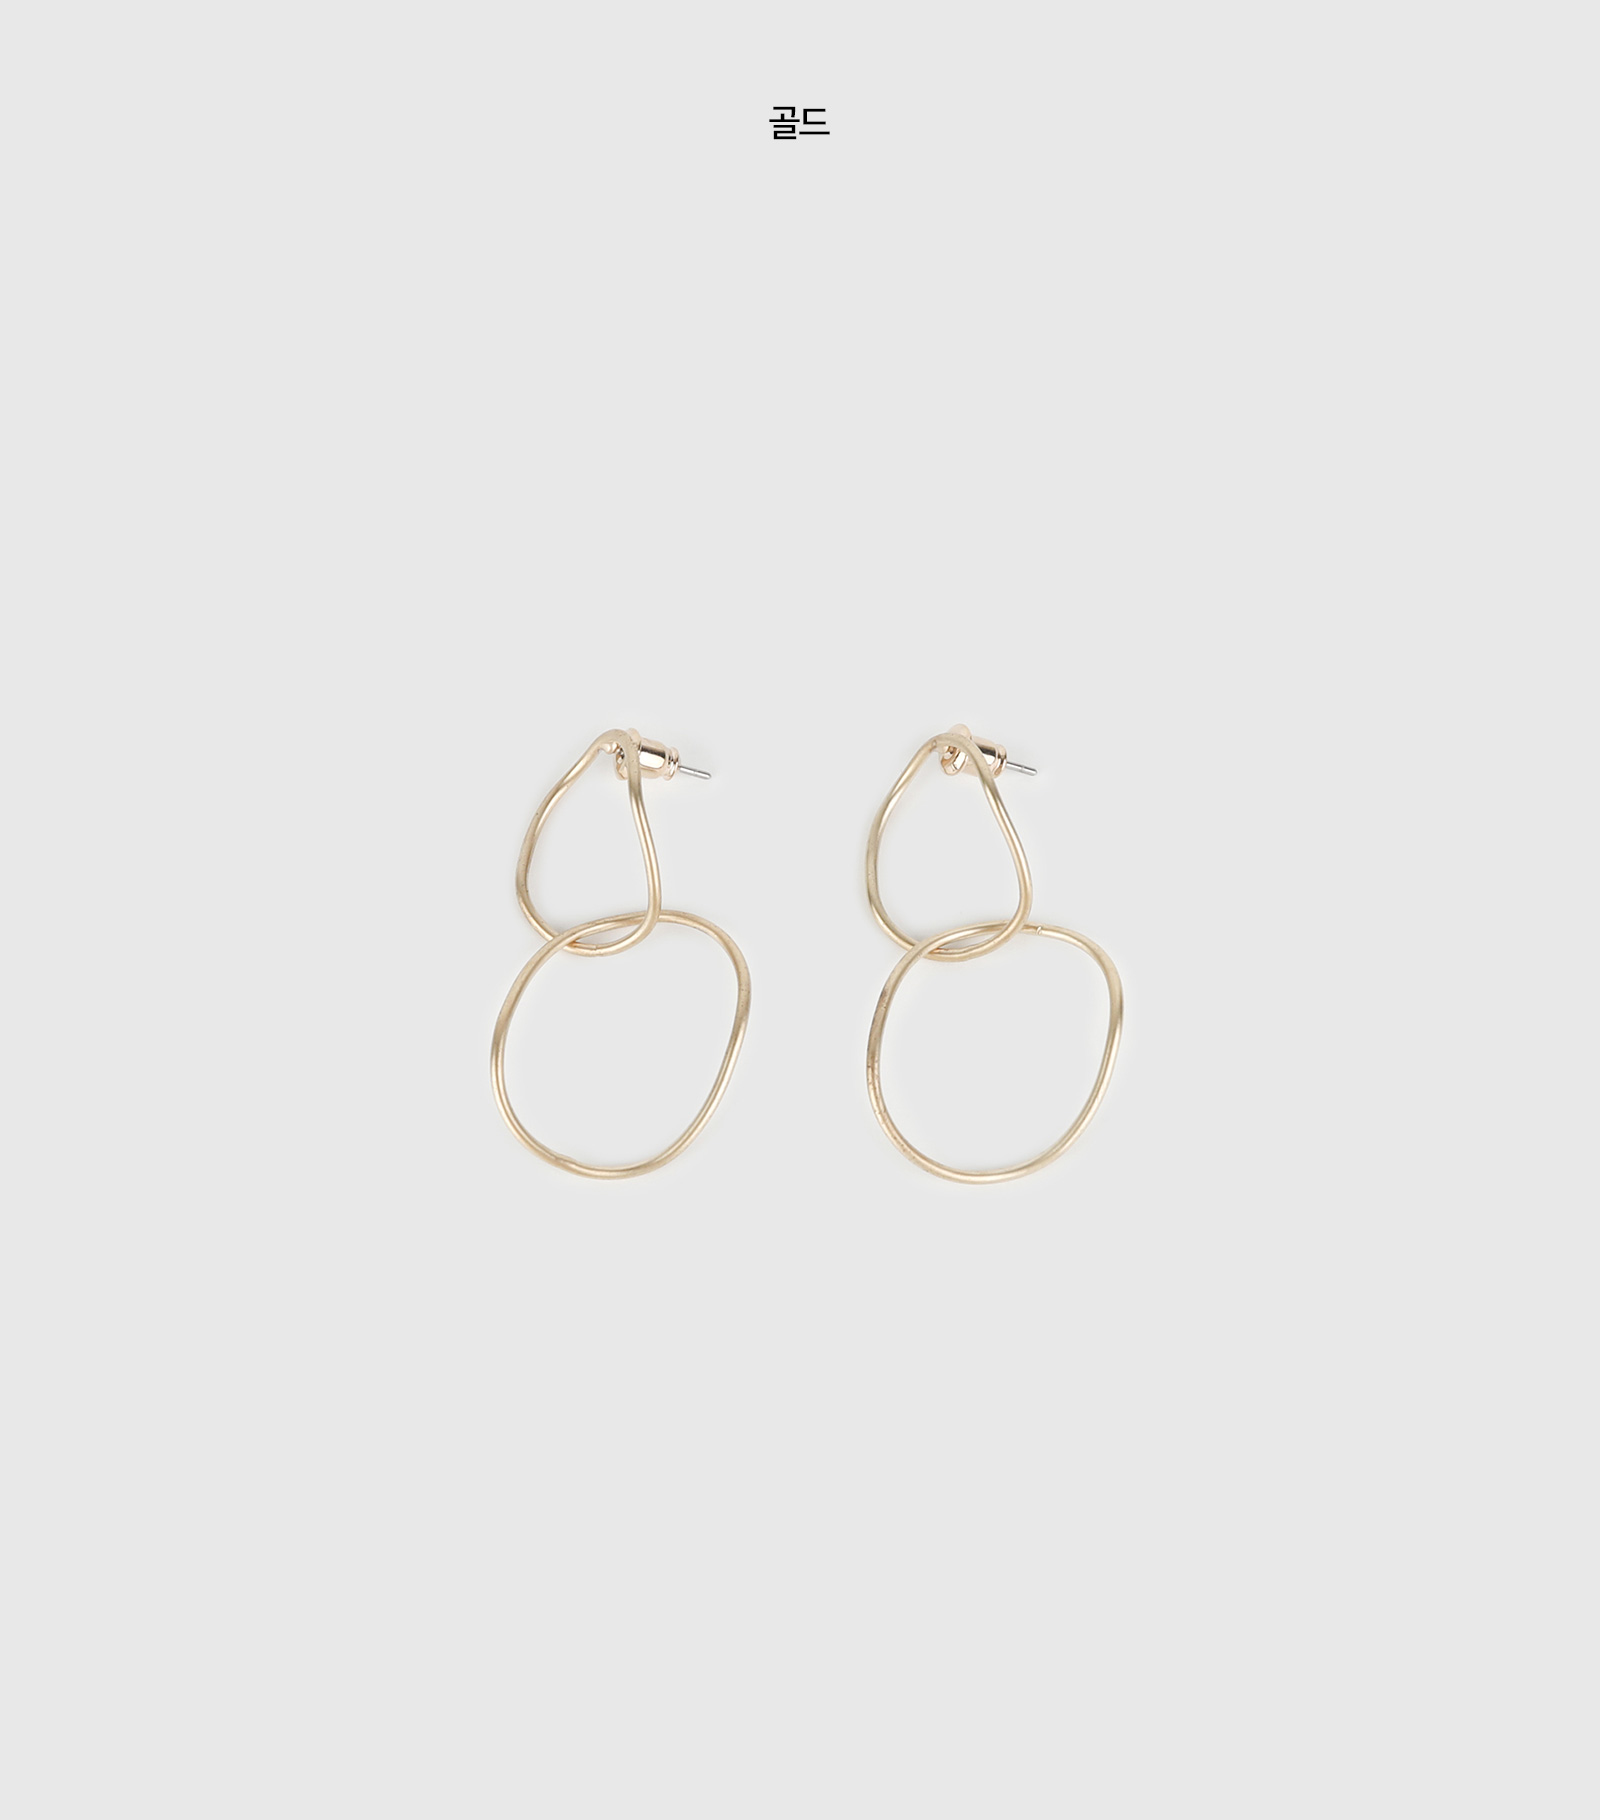 Haze drop earrings